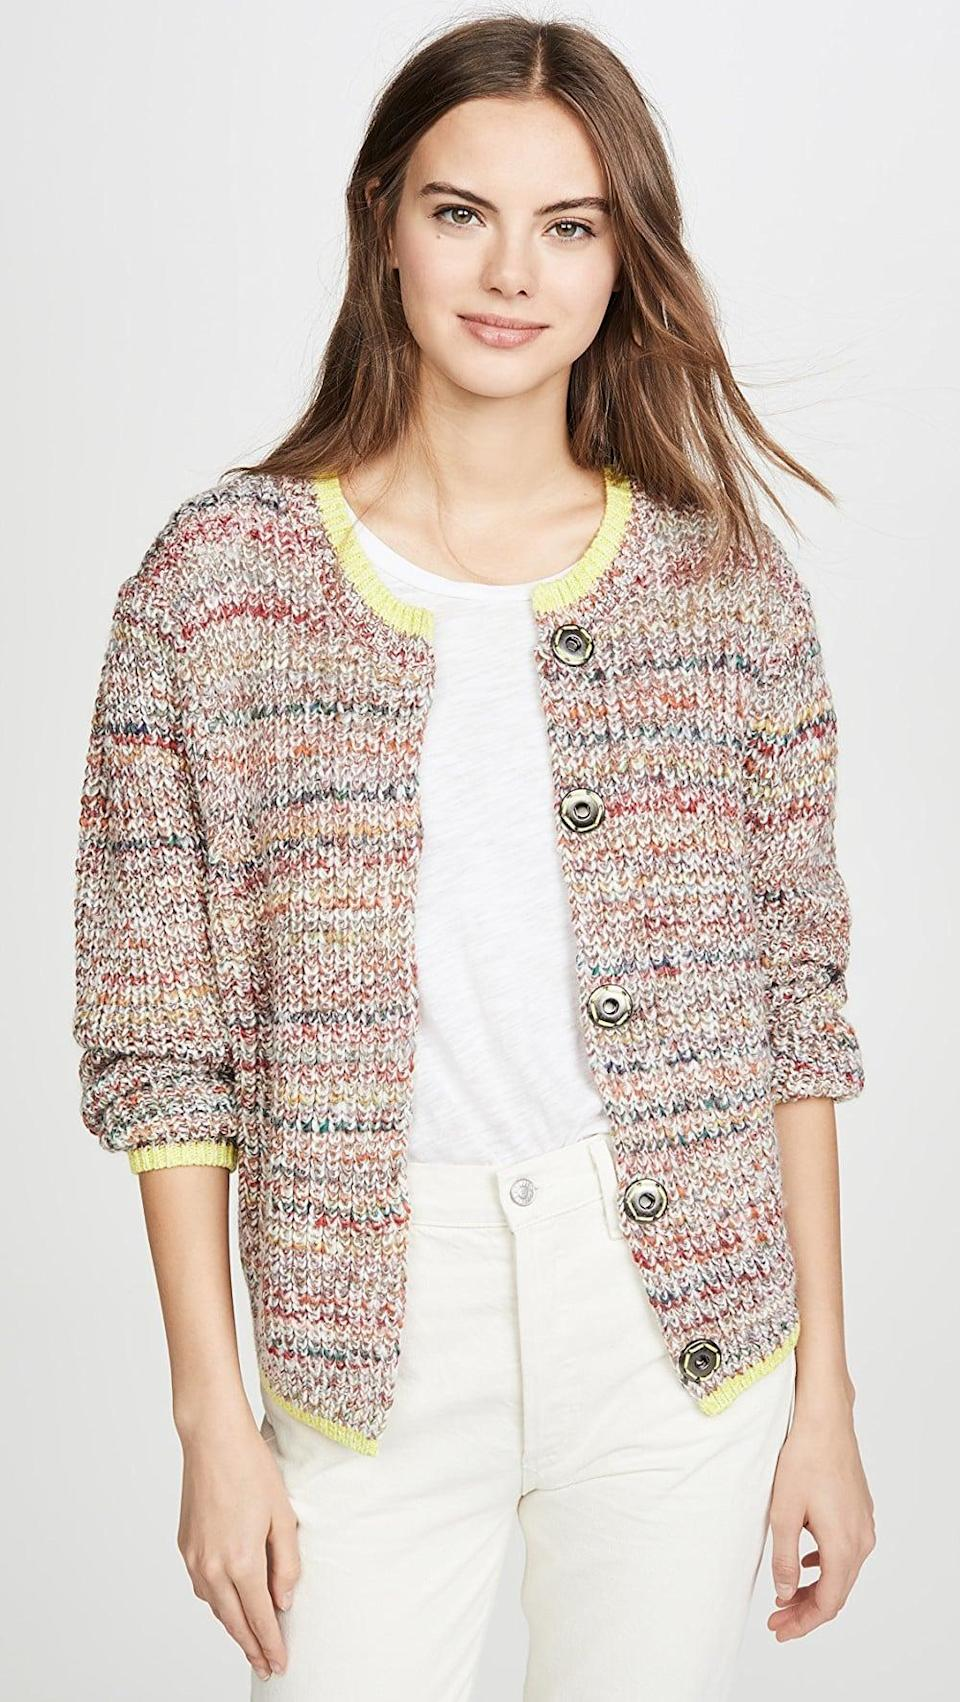 "<p>We love the colors of this <a href=""https://www.popsugar.com/buy/Free-People-Walk-Cardigan-532940?p_name=Free%20People%20Walk%20On%20By%20Cardigan&retailer=shopbop.com&pid=532940&price=148&evar1=fab%3Aus&evar9=36291197&evar98=https%3A%2F%2Fwww.popsugar.com%2Ffashion%2Fphoto-gallery%2F36291197%2Fimage%2F47027887%2FFree-People-Walk-On-By-Cardigan&list1=shopping%2Choliday%2Cwinter%2Cgift%20guide%2Cwinter%20fashion%2Choliday%20fashion%2Cfashion%20gifts&prop13=api&pdata=1"" rel=""nofollow noopener"" class=""link rapid-noclick-resp"" target=""_blank"" data-ylk=""slk:Free People Walk On By Cardigan"">Free People Walk On By Cardigan</a> ($148).</p>"